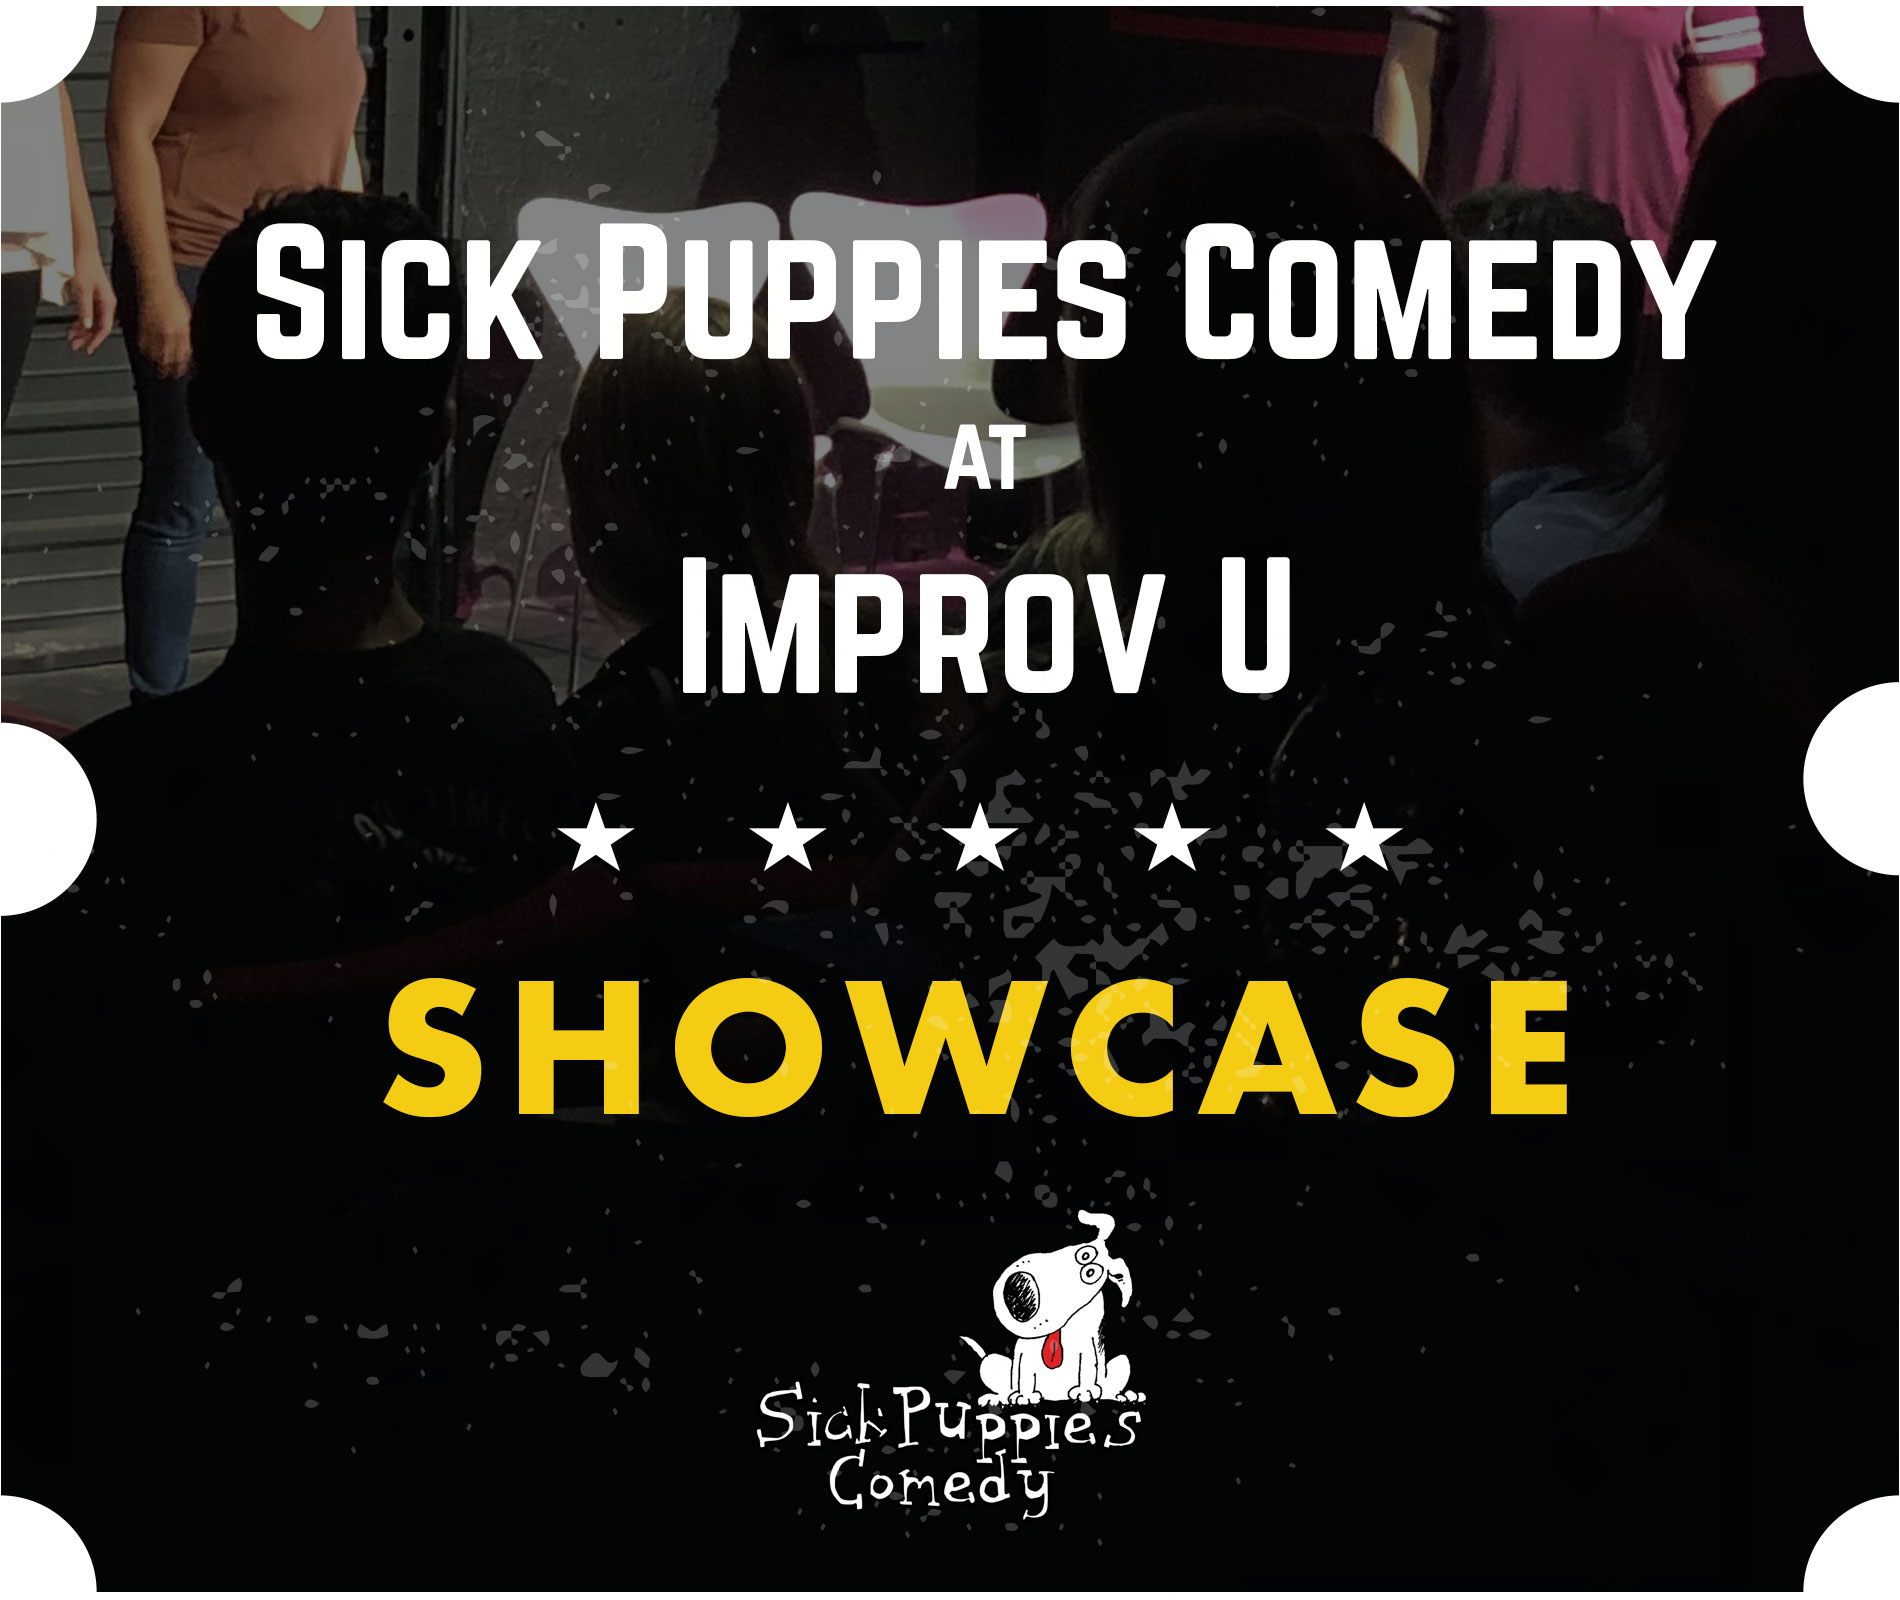 August 31, 2019 Sick Puppies Showcase